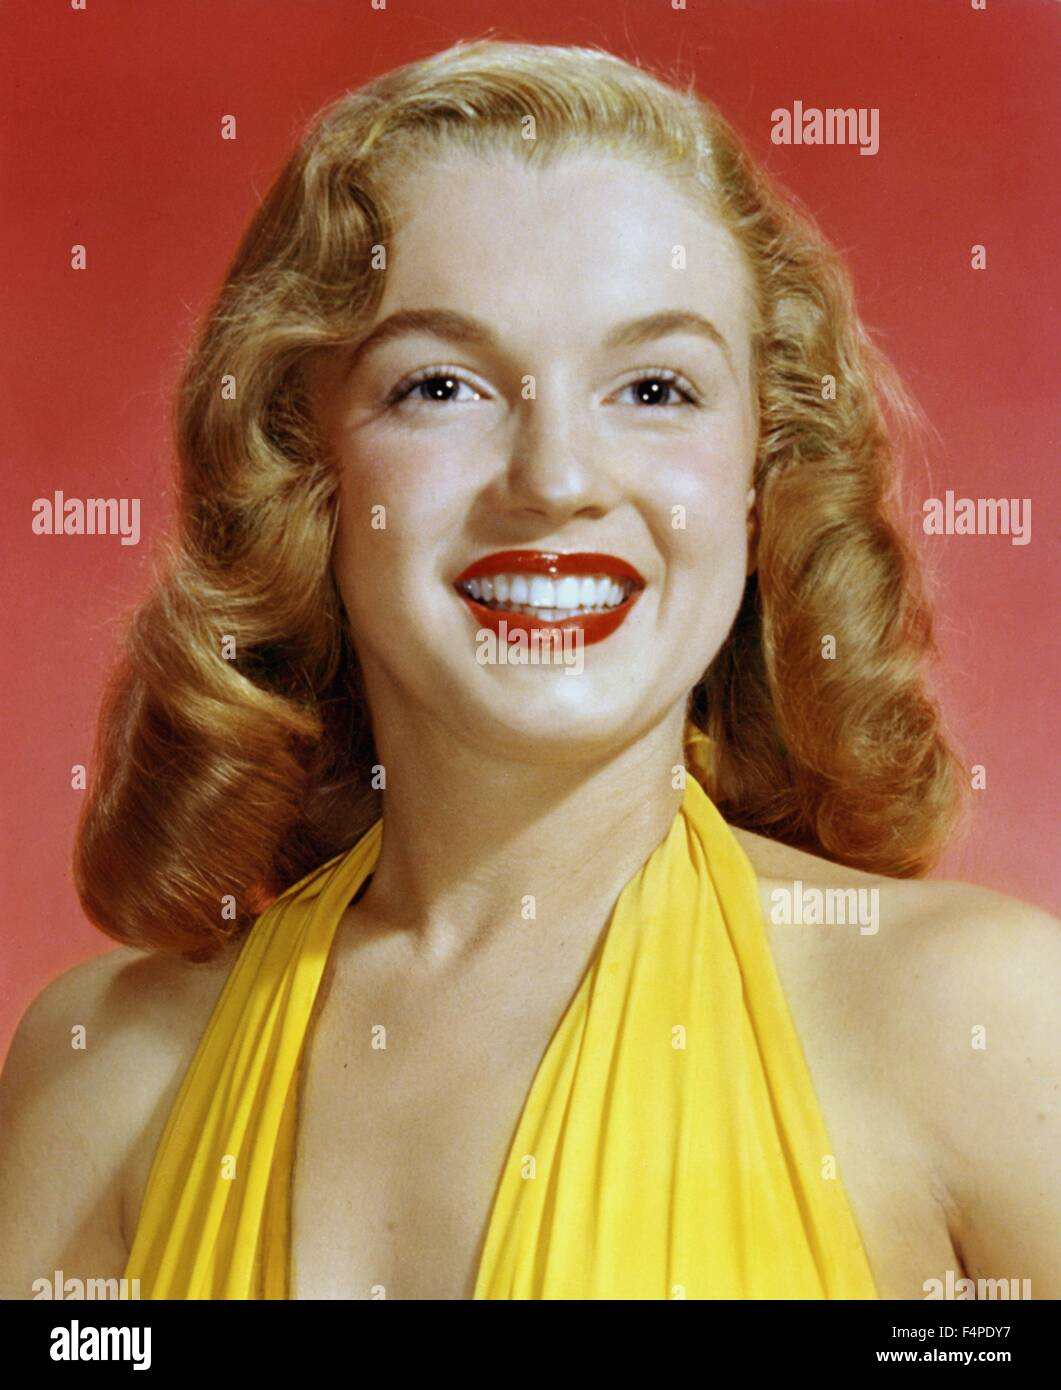 Close-up portrait of Marilyn Monroe in 1946 - Stock Image